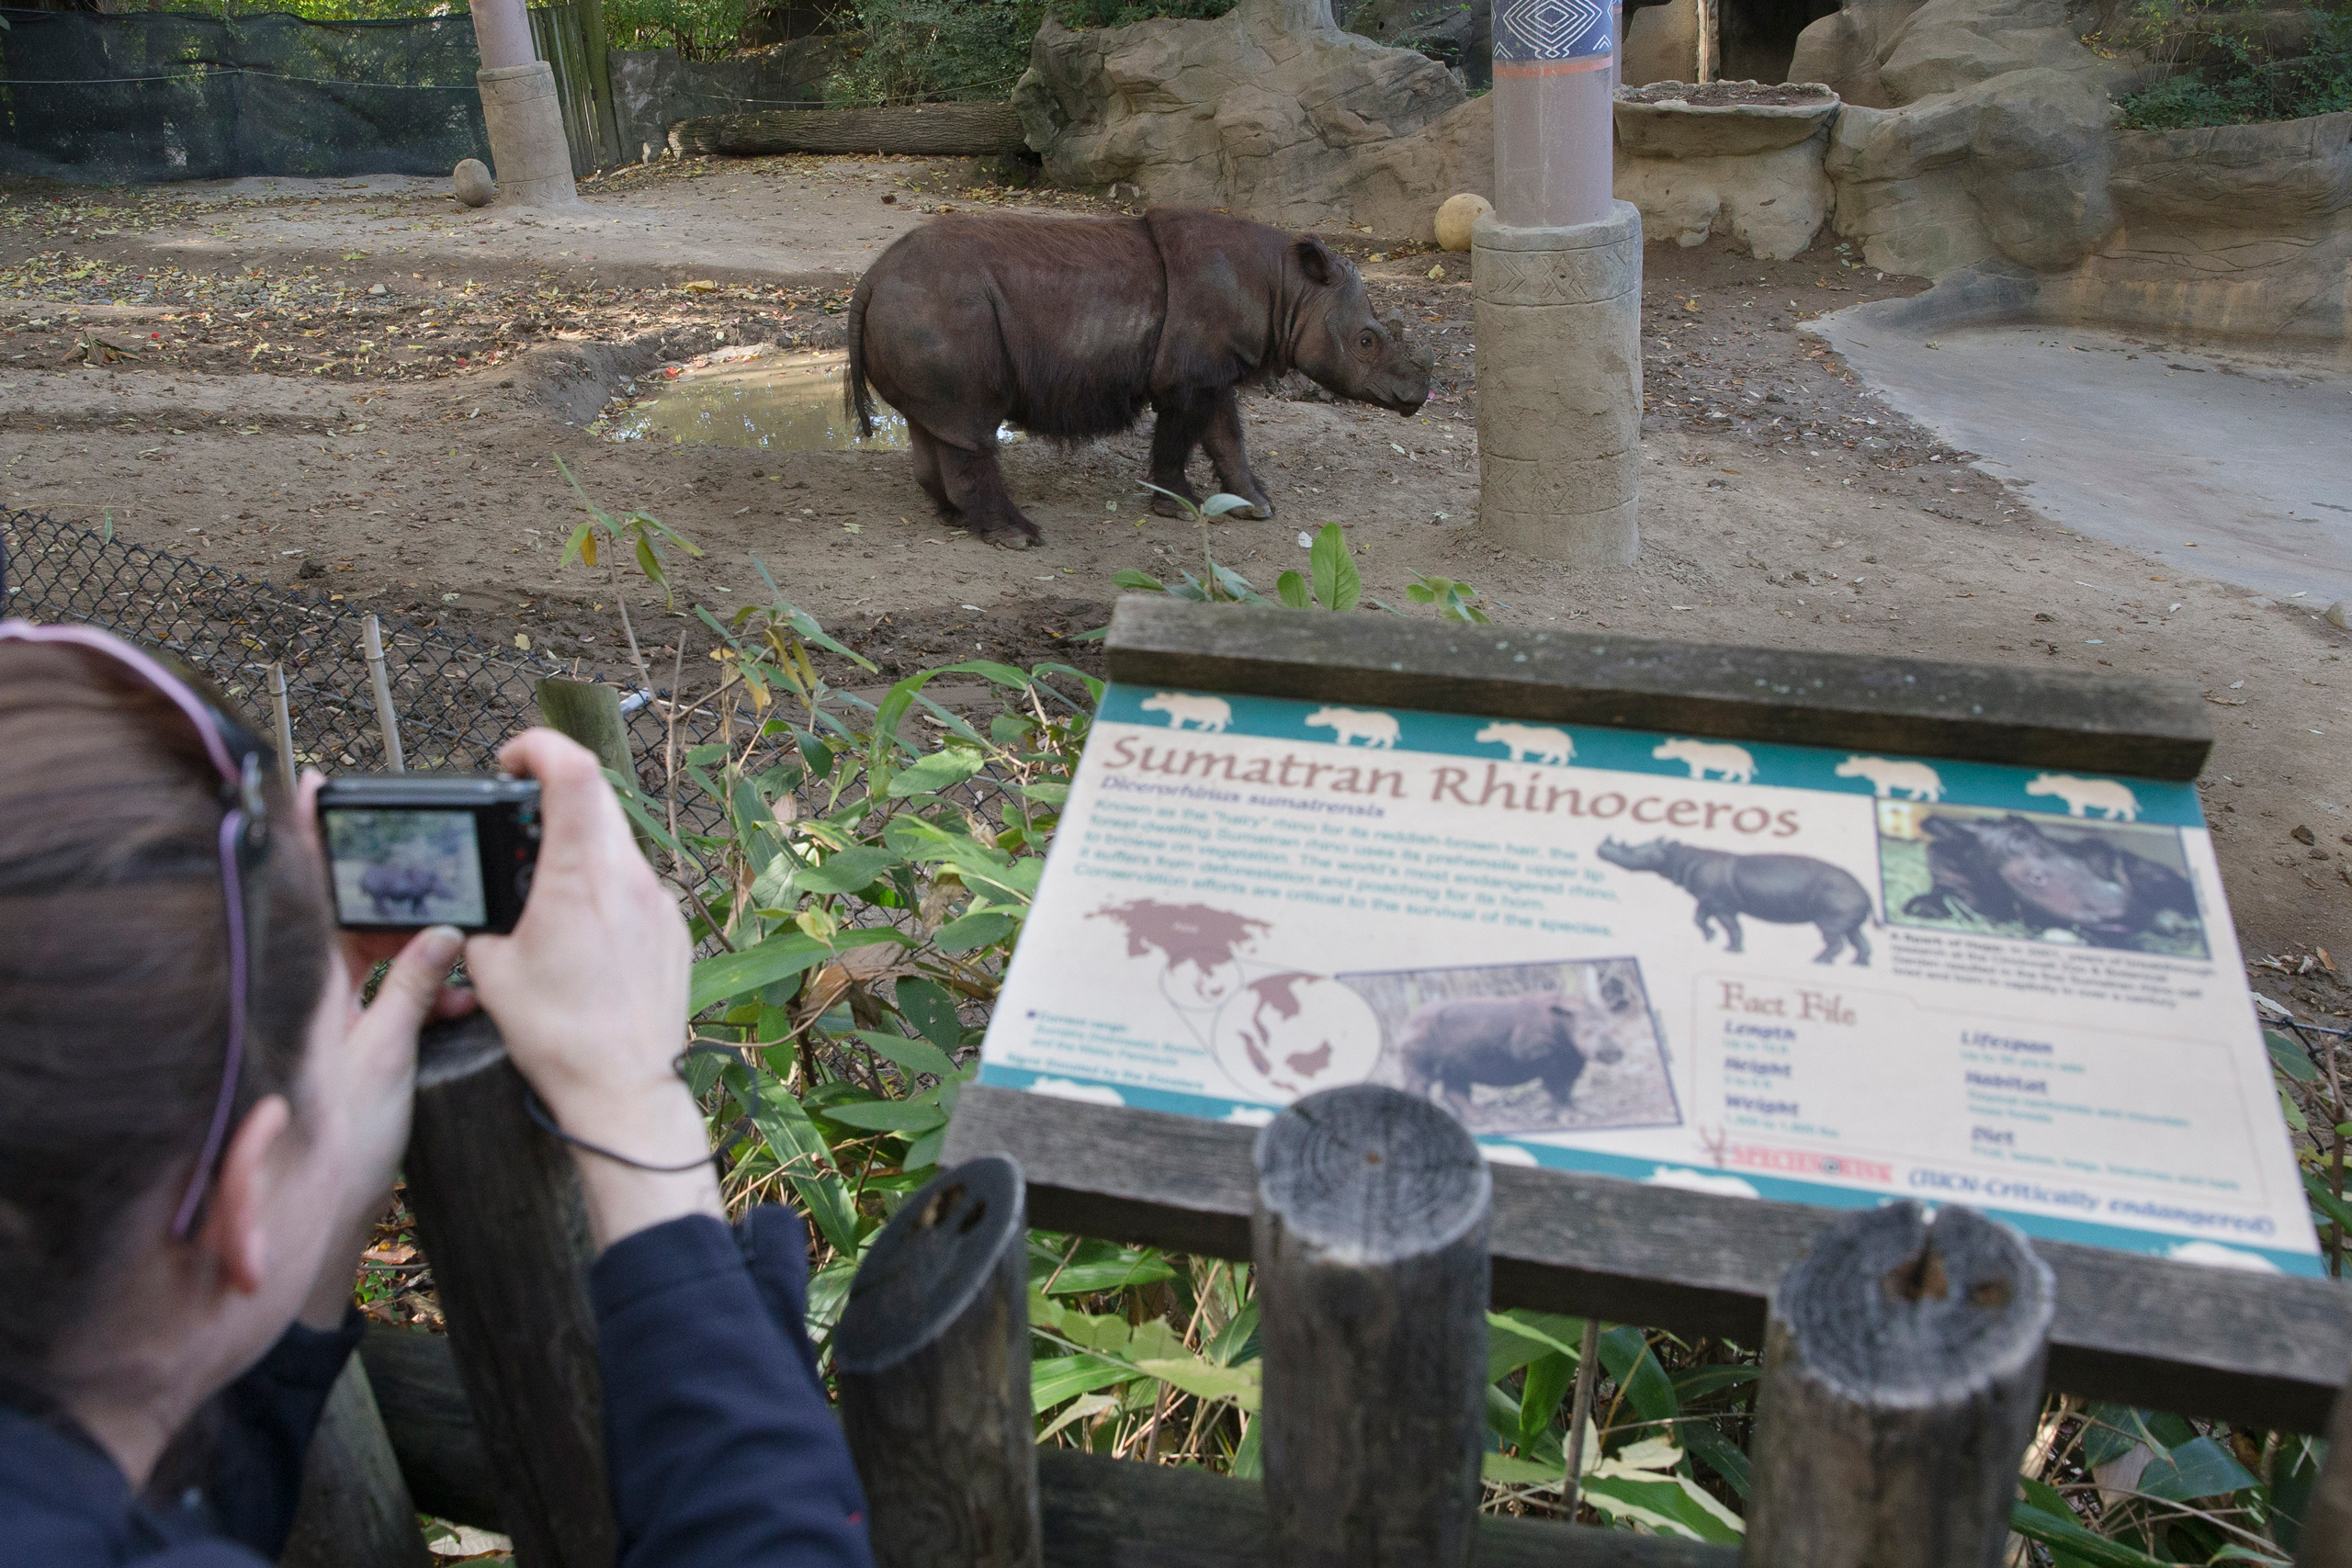 Visitors photograph Harapan, a Sumatran Rhino, as he roams his enclosure on his last day of viewing at the Cincinnati Zoo and Botanical Gardens, in Cincinnati on Oct. 29, 2015. Harapan, the last of his kind in the Western Hemisphere, is on the way to his ancestral southeast Asian homeland on a mission to help preserve his critically endangered species by mating with one of the females in an Indonesian sanctuary.